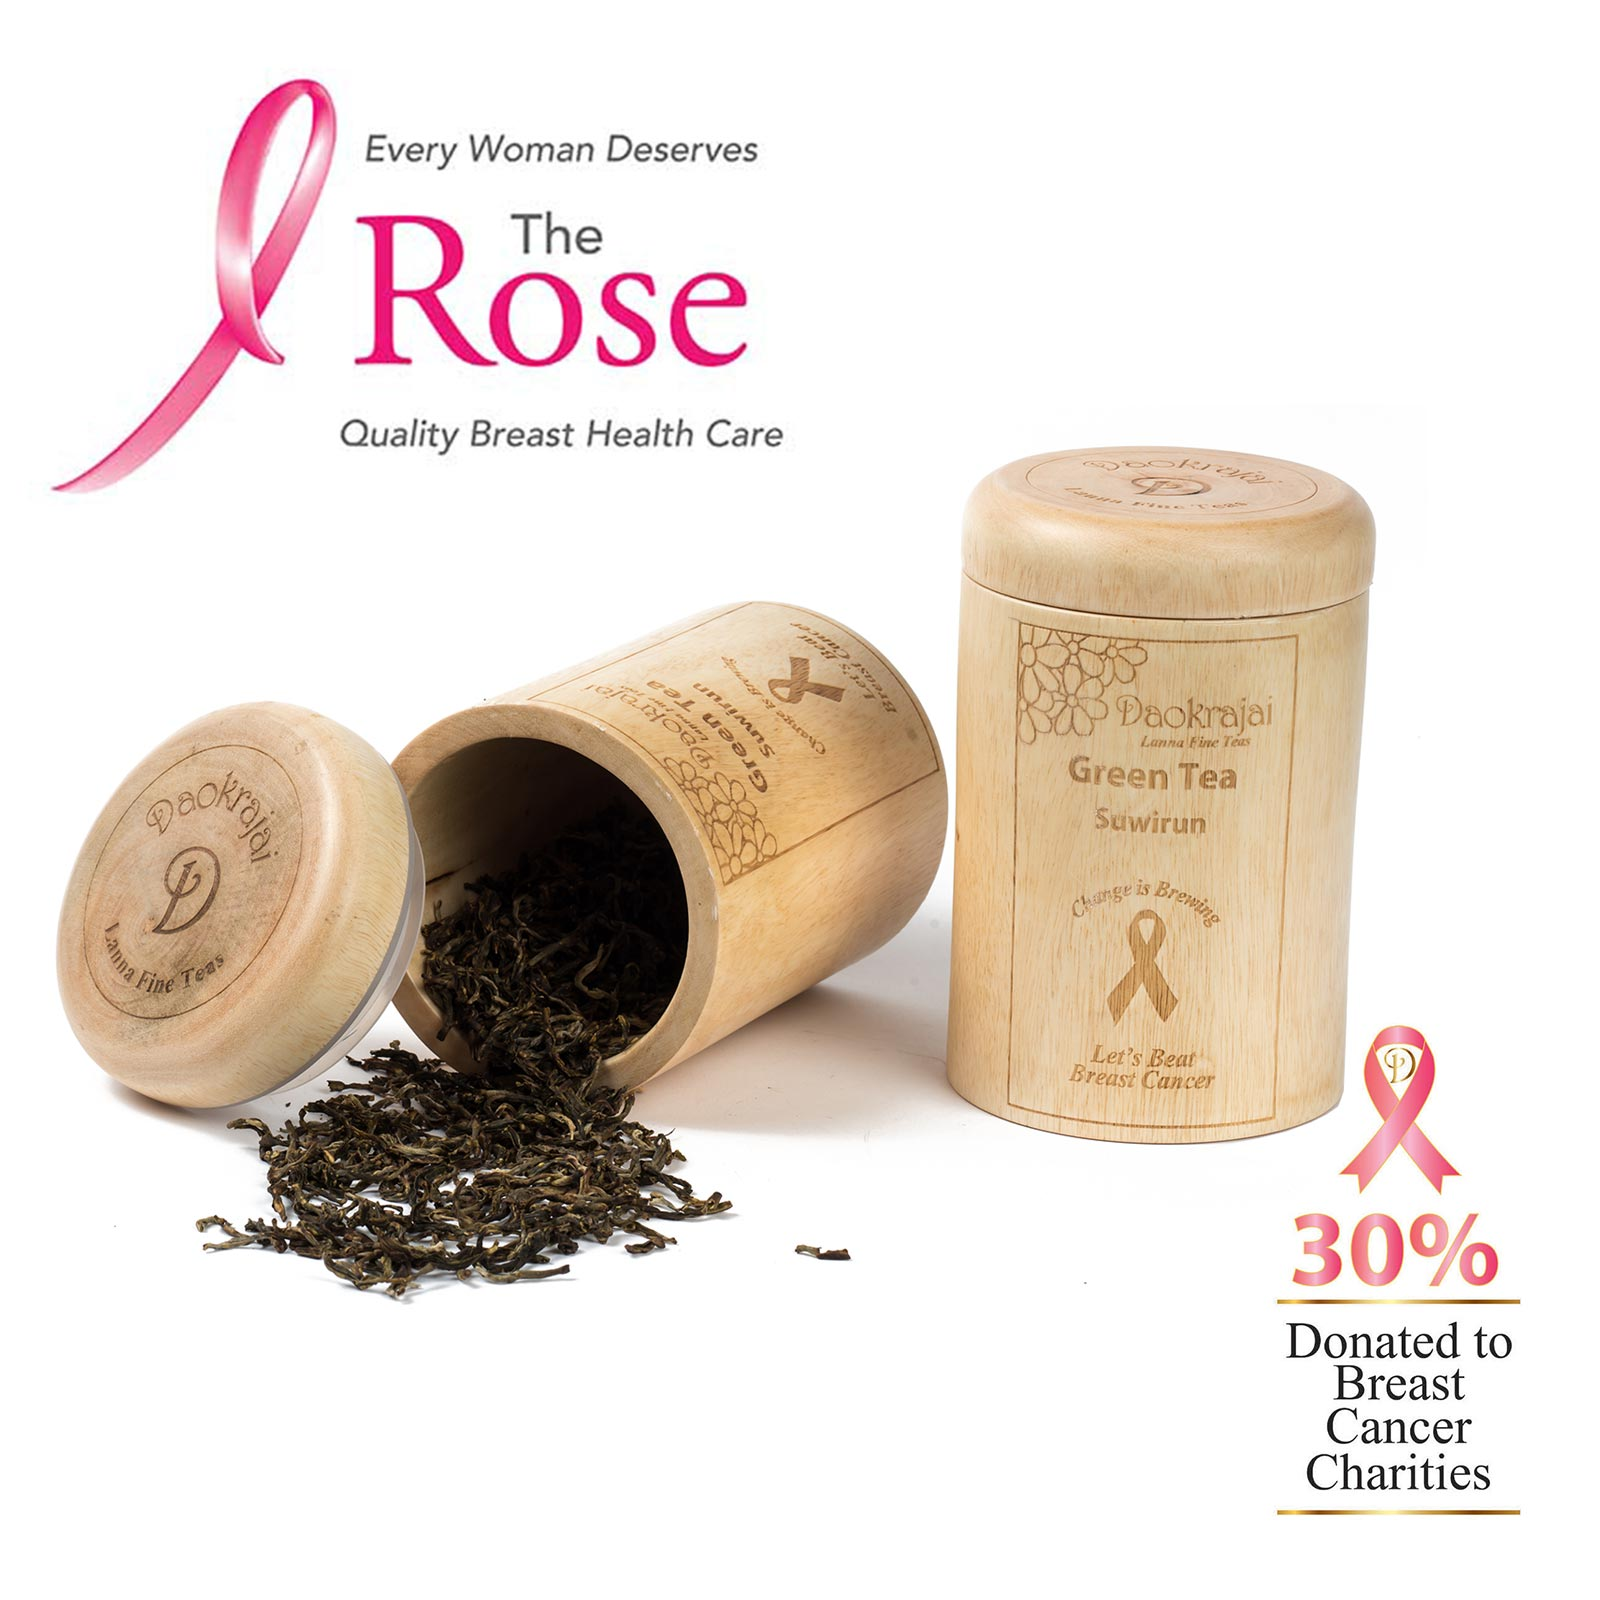 Green Tea Suwirun Caddy supporting The Rose Breast Cancer Charity